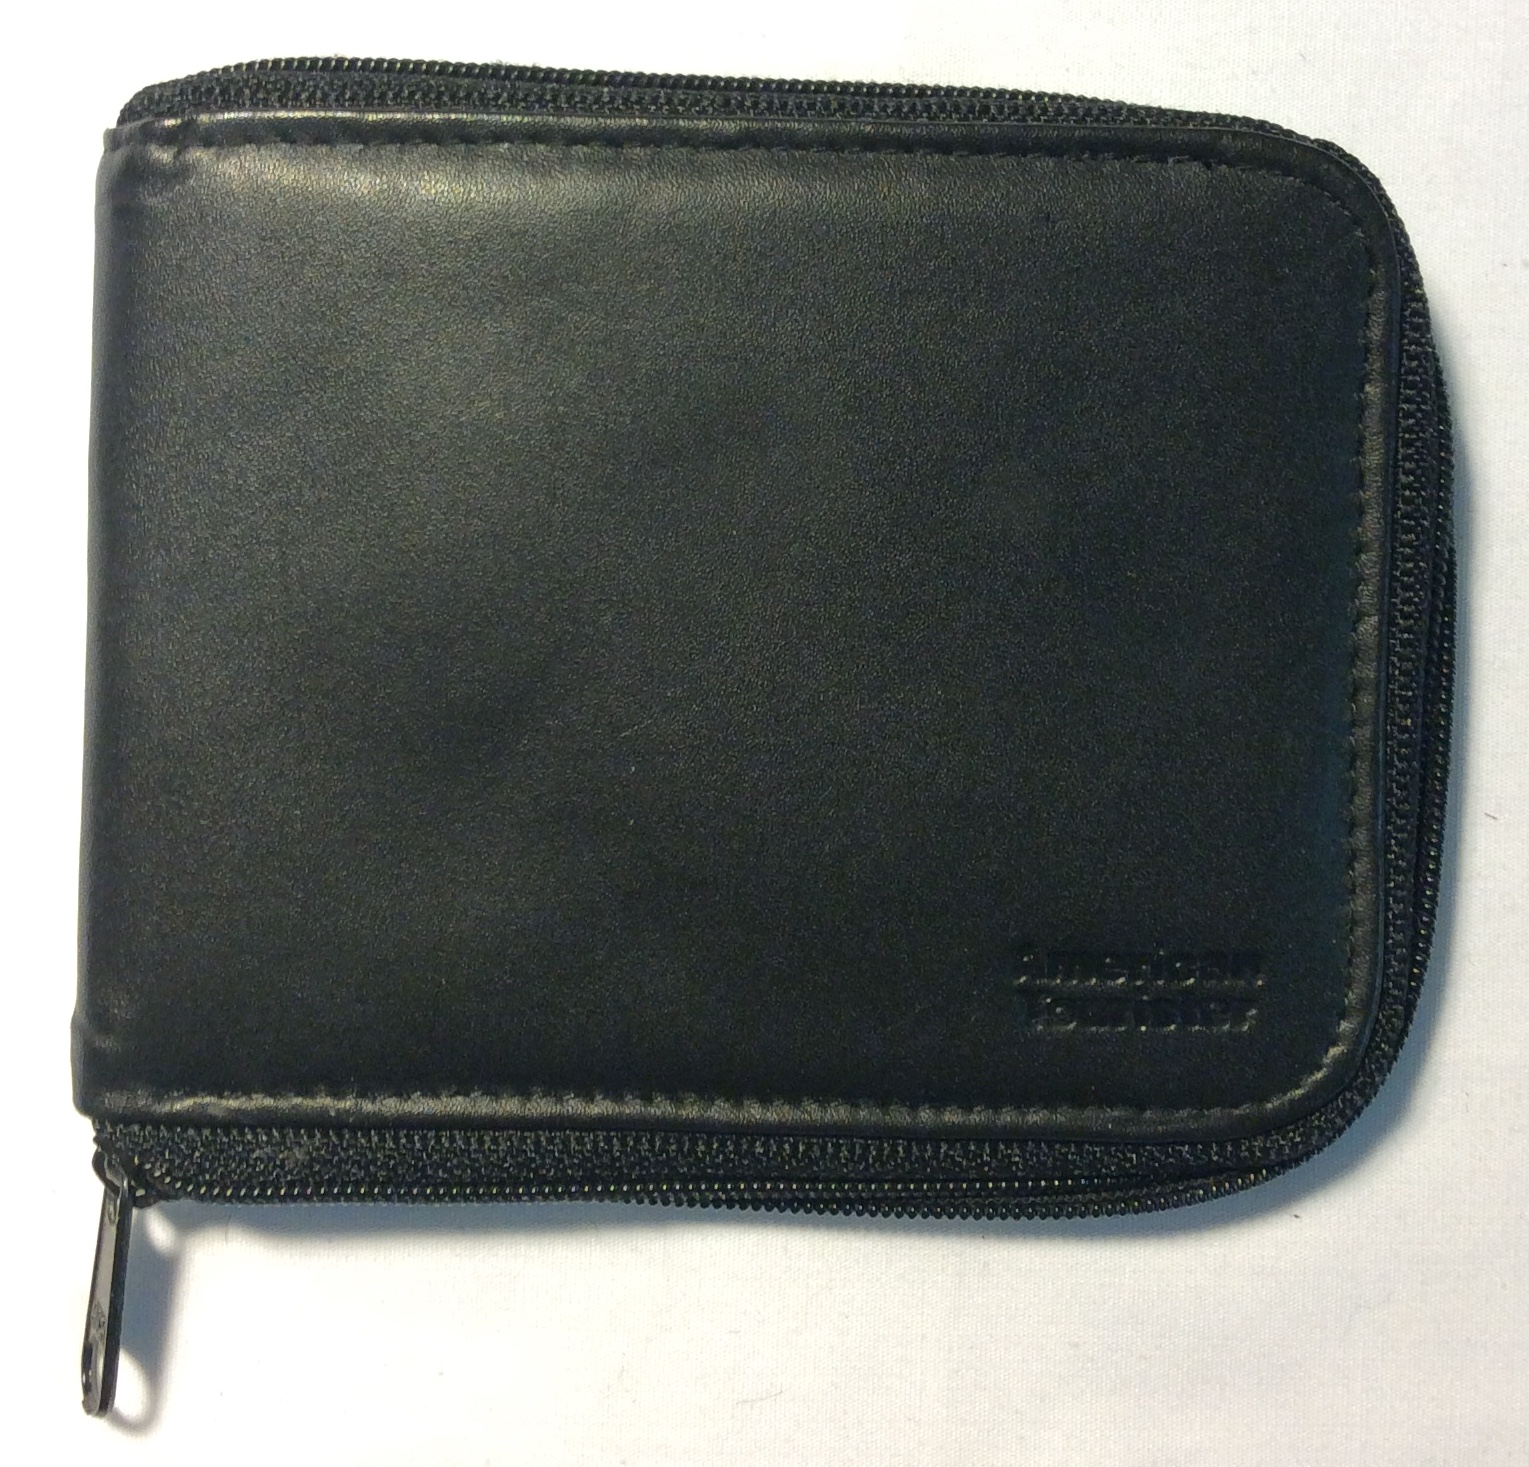 American Tourister Black leather